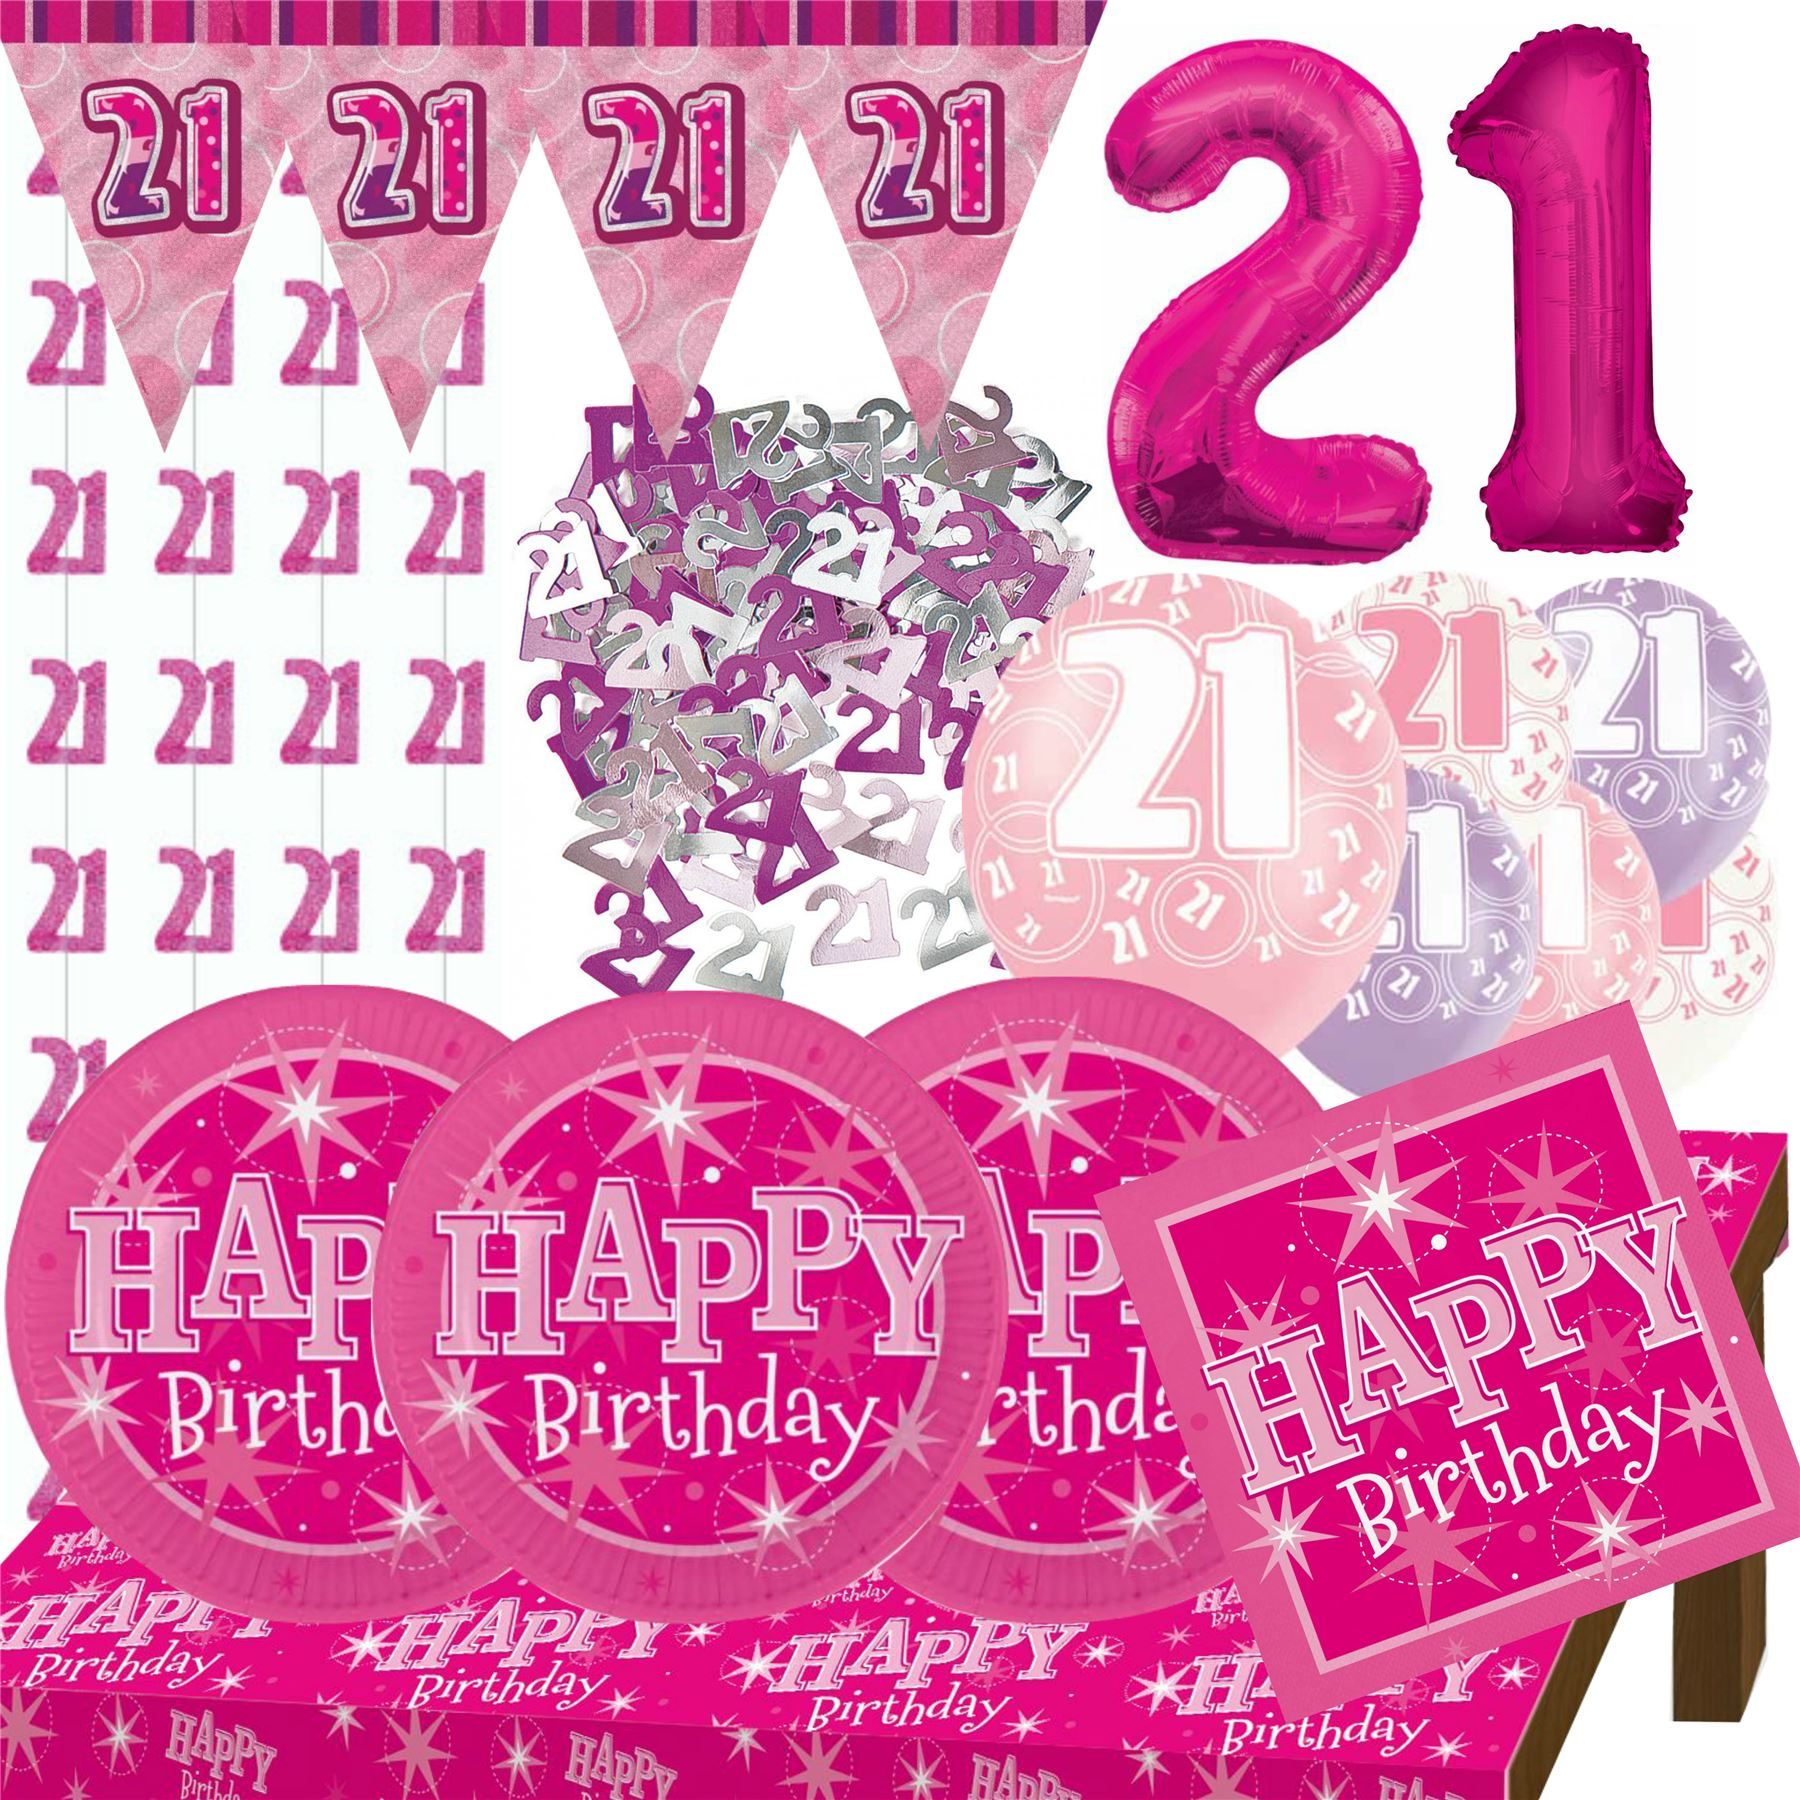 21st birthday banners and balloons ; 797d79bf-17c3-4e1f-bdca-fc97fba4520a